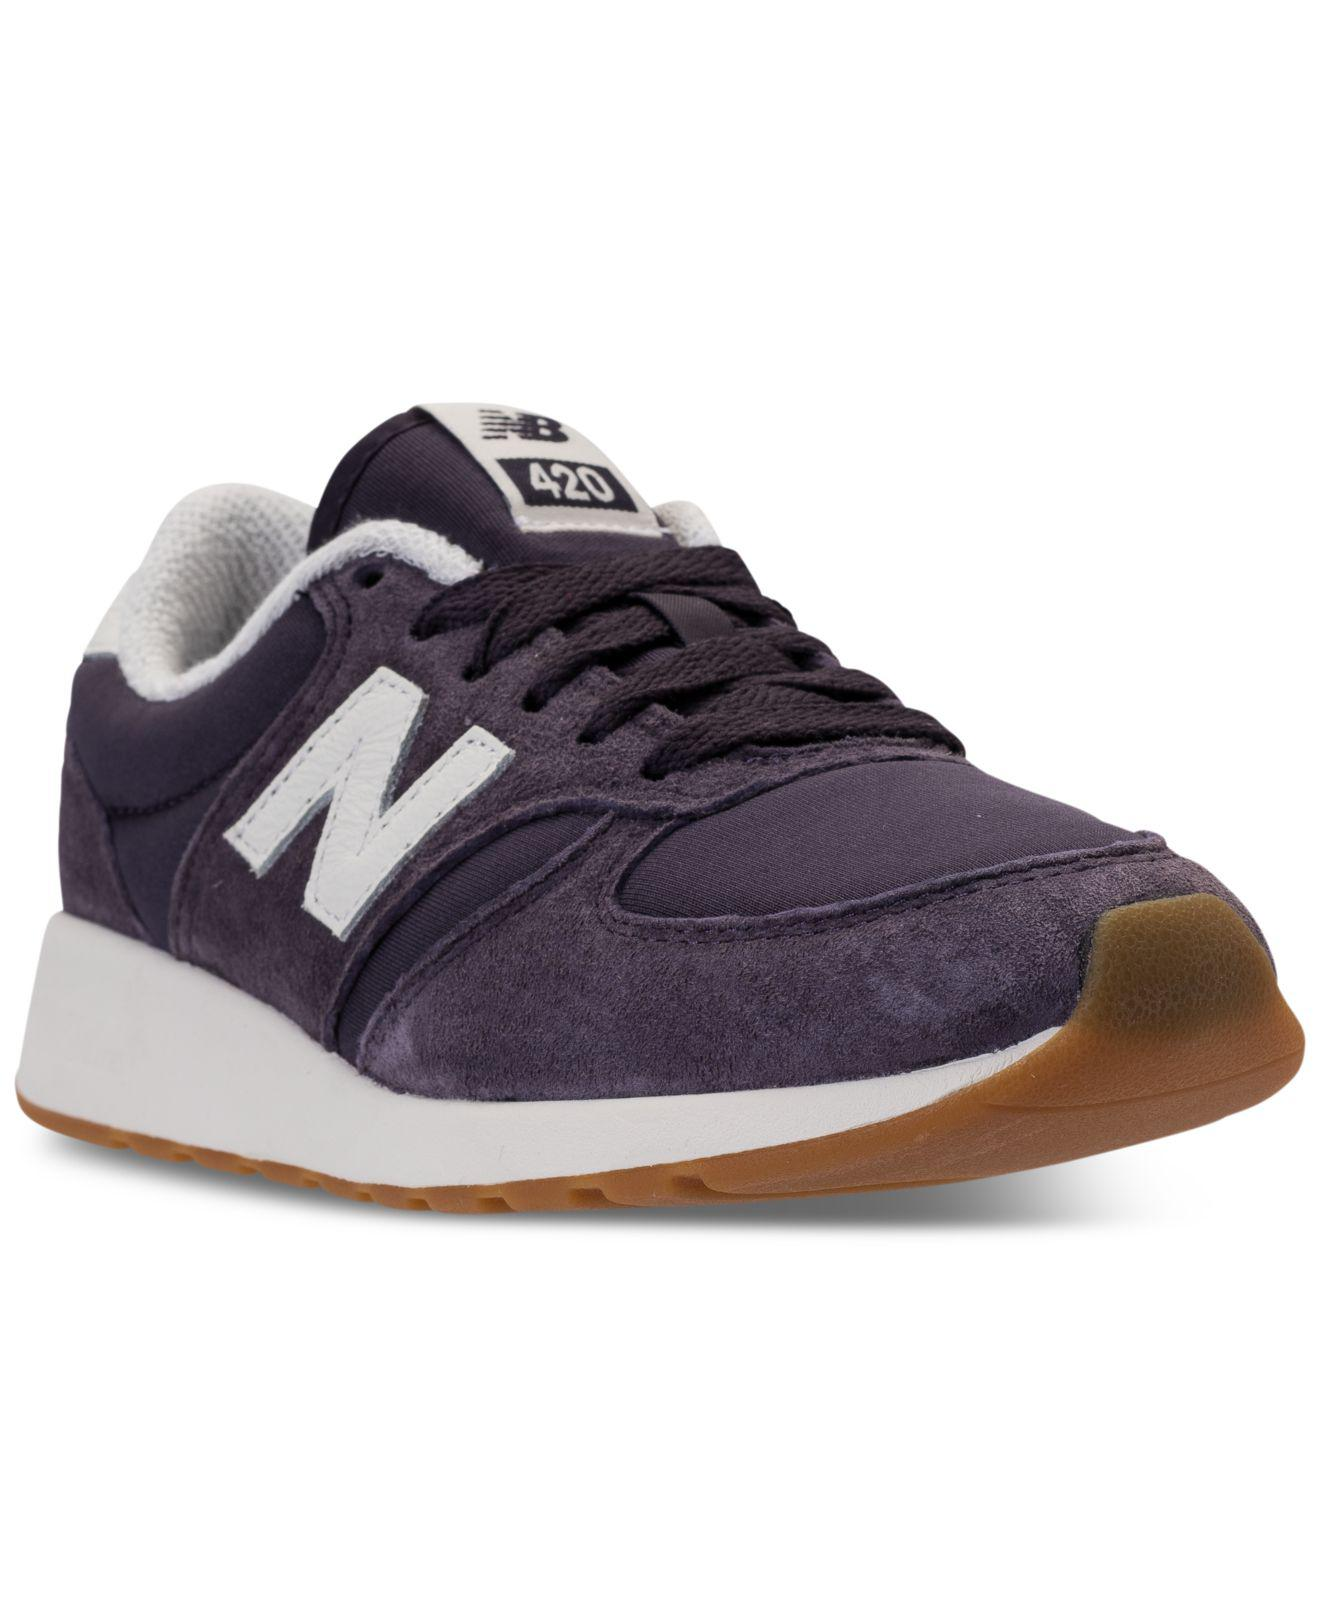 new balance women's 420 casual sneakers